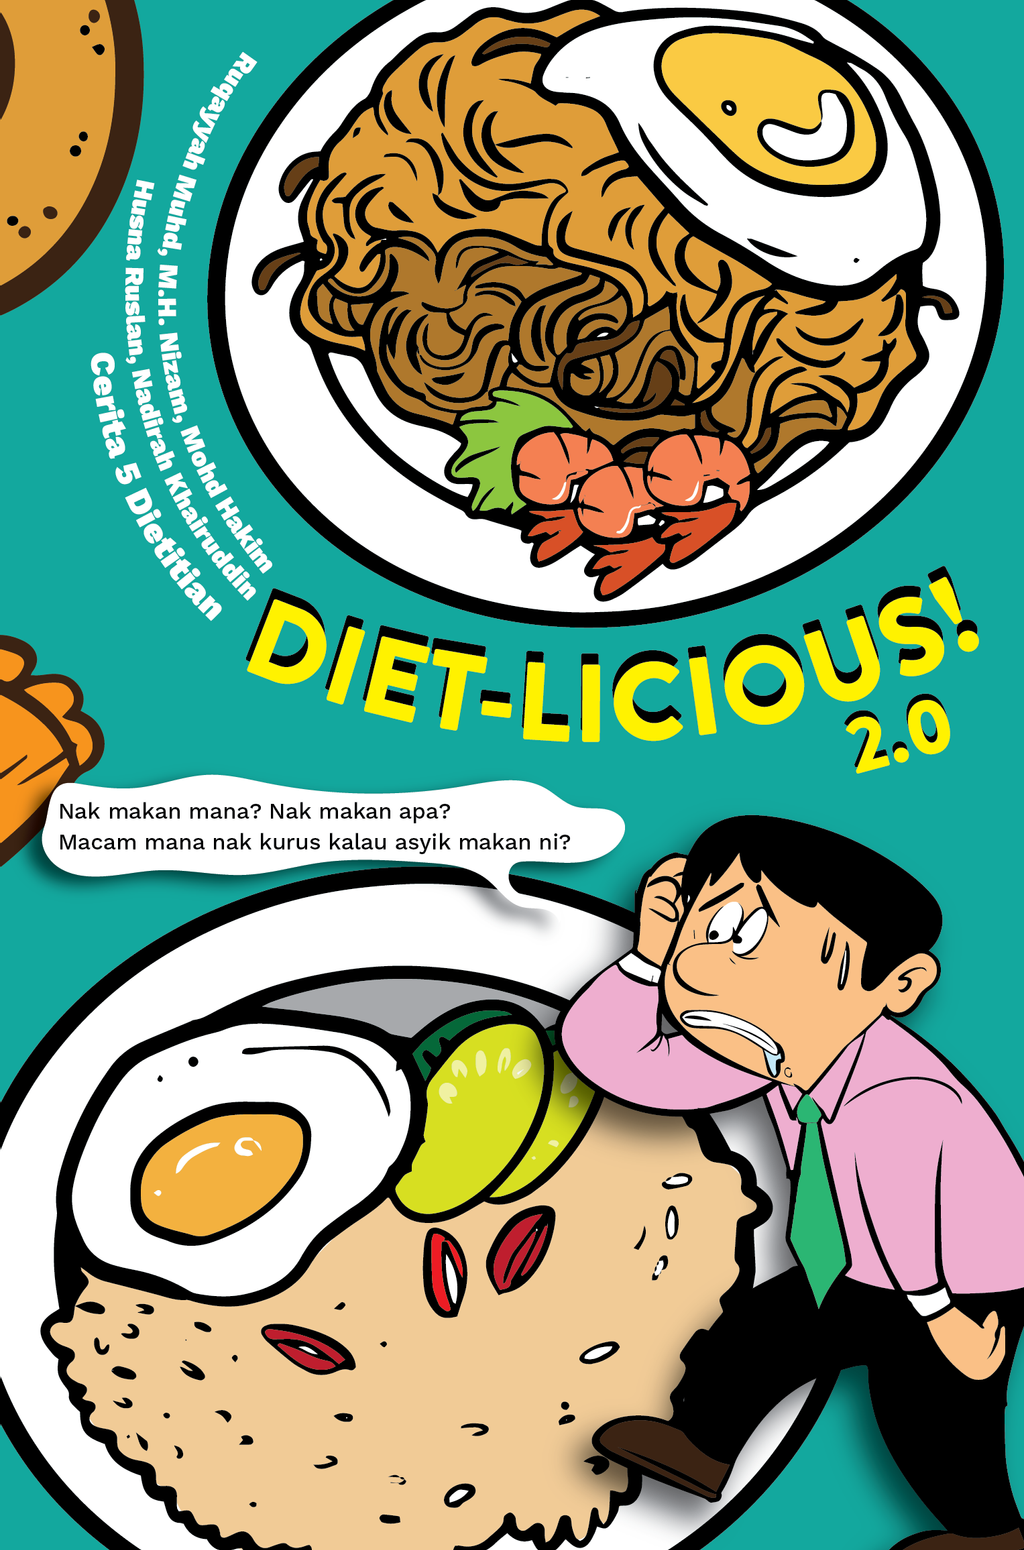 Diet-licious2-Mac19-01Front.png